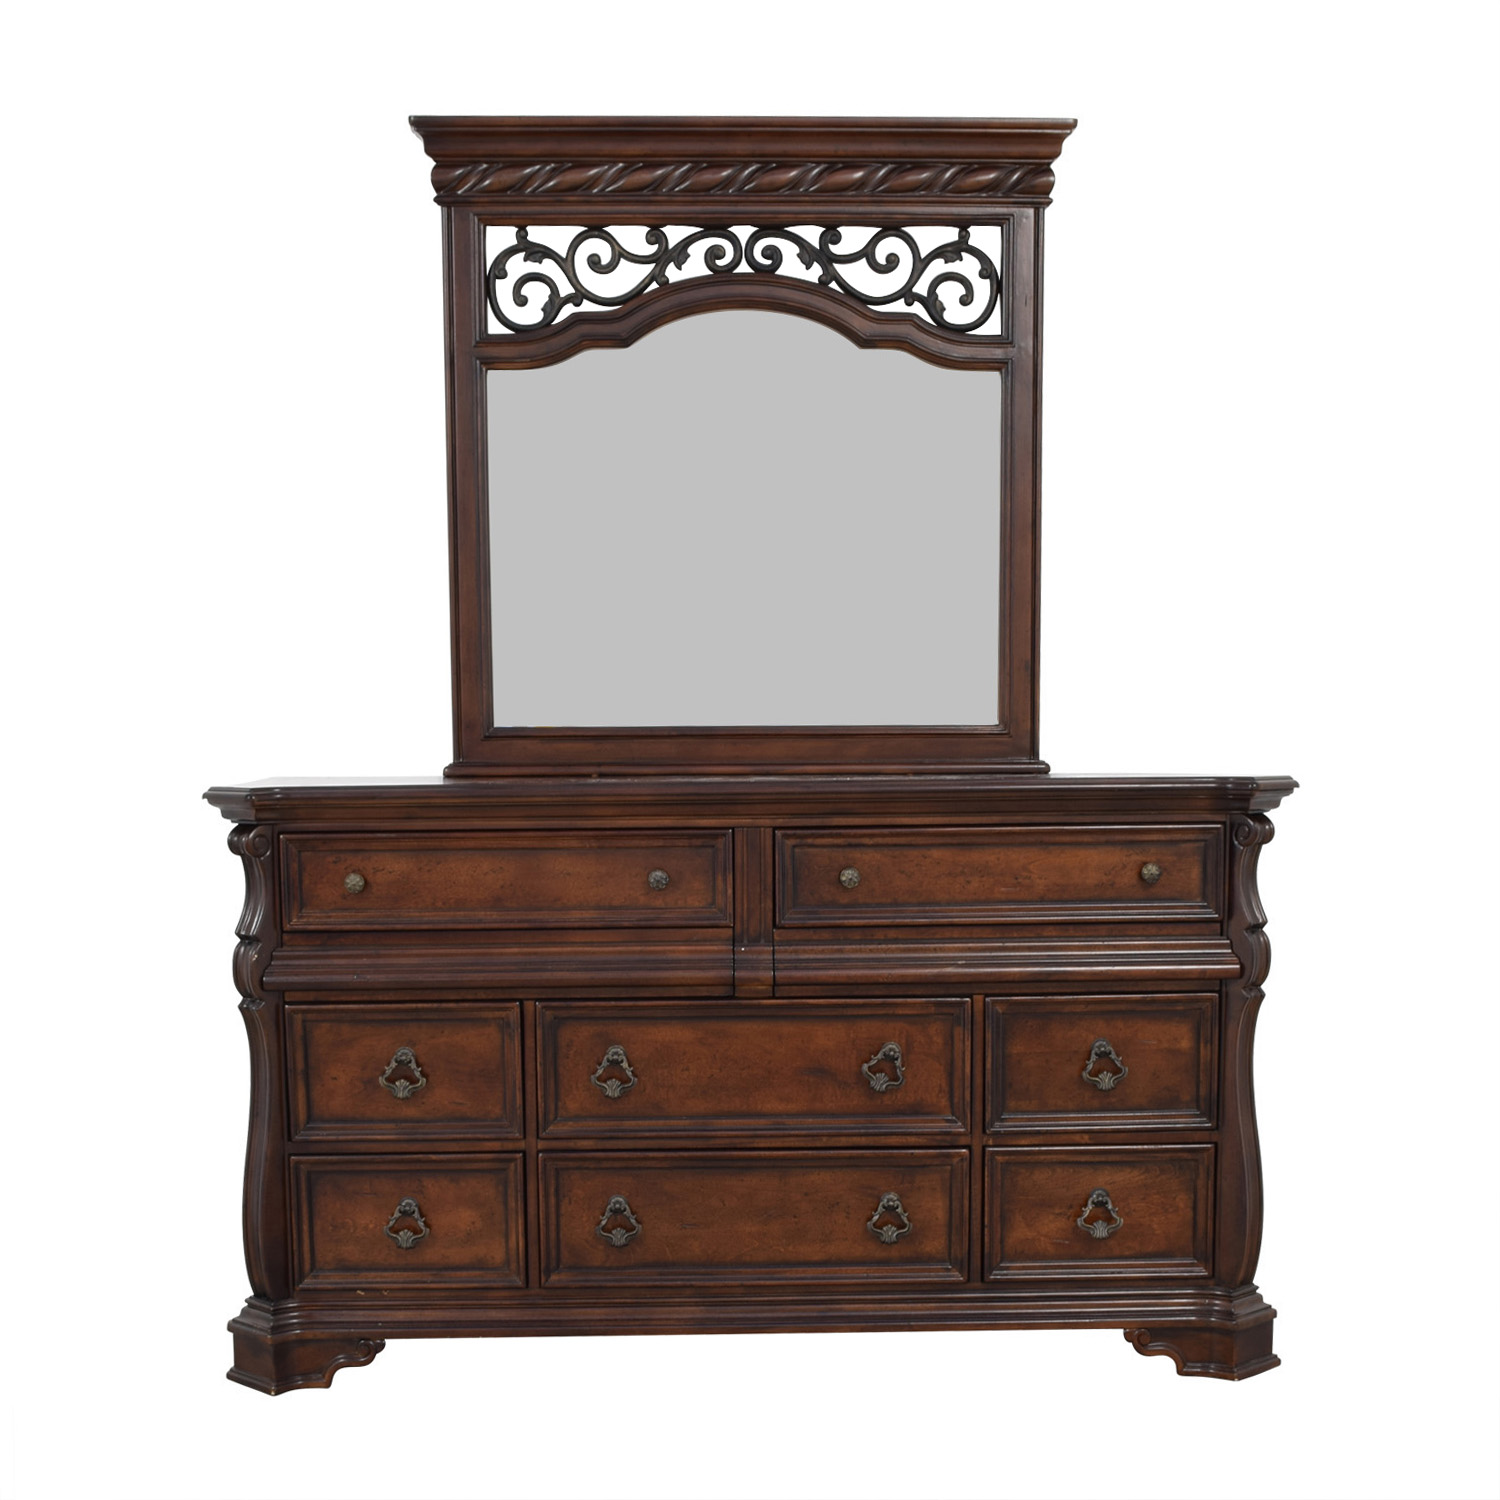 Liberty Furniture Liberty Furniture Eight Drawer Dresser with Scrolled Mirror